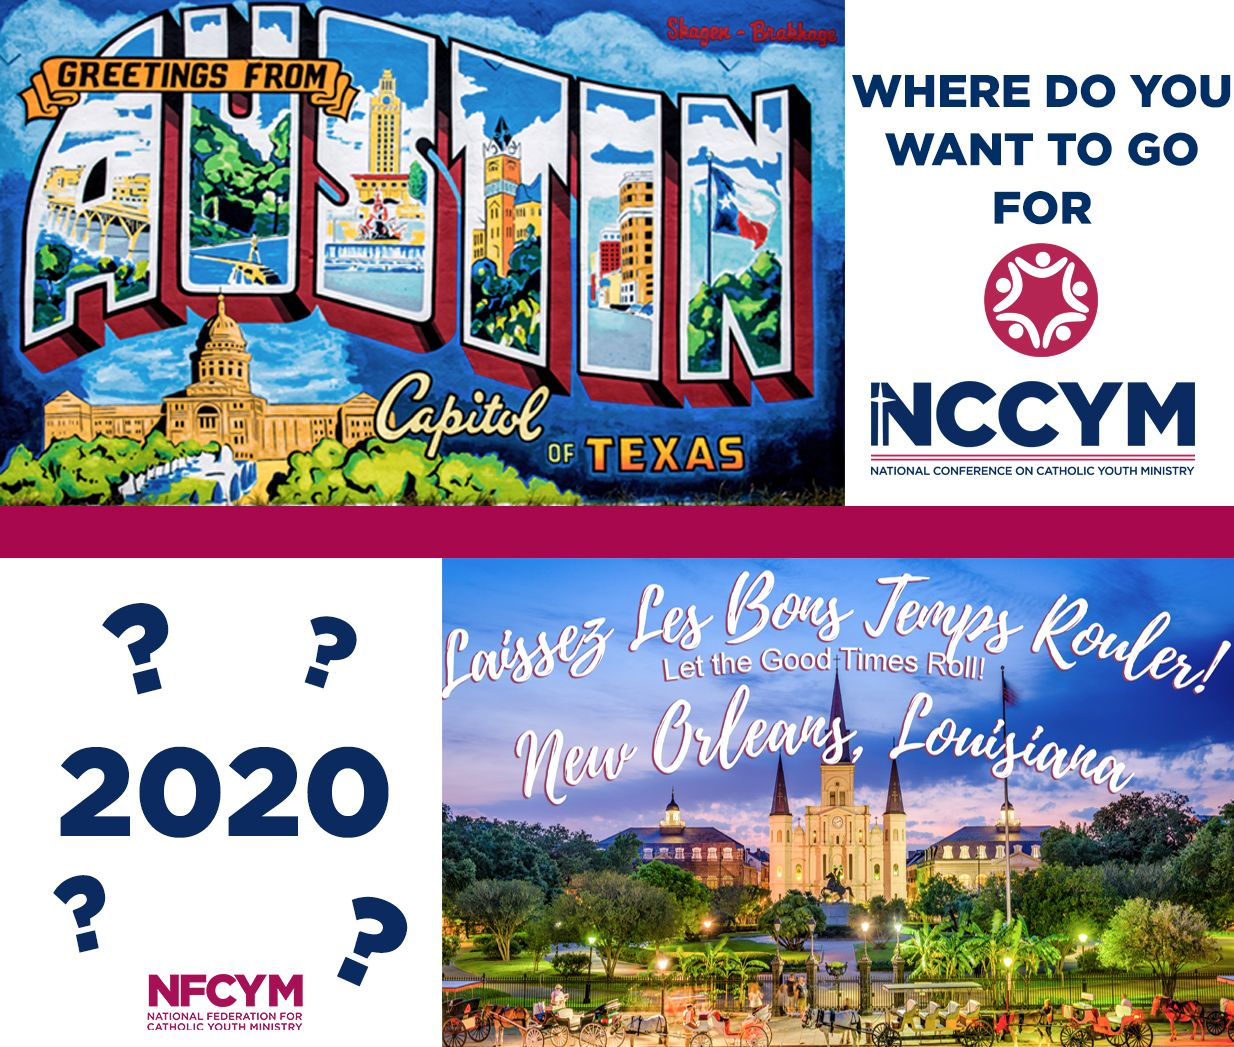 Nfcym On Twitter Where Do You Want To Go For The National